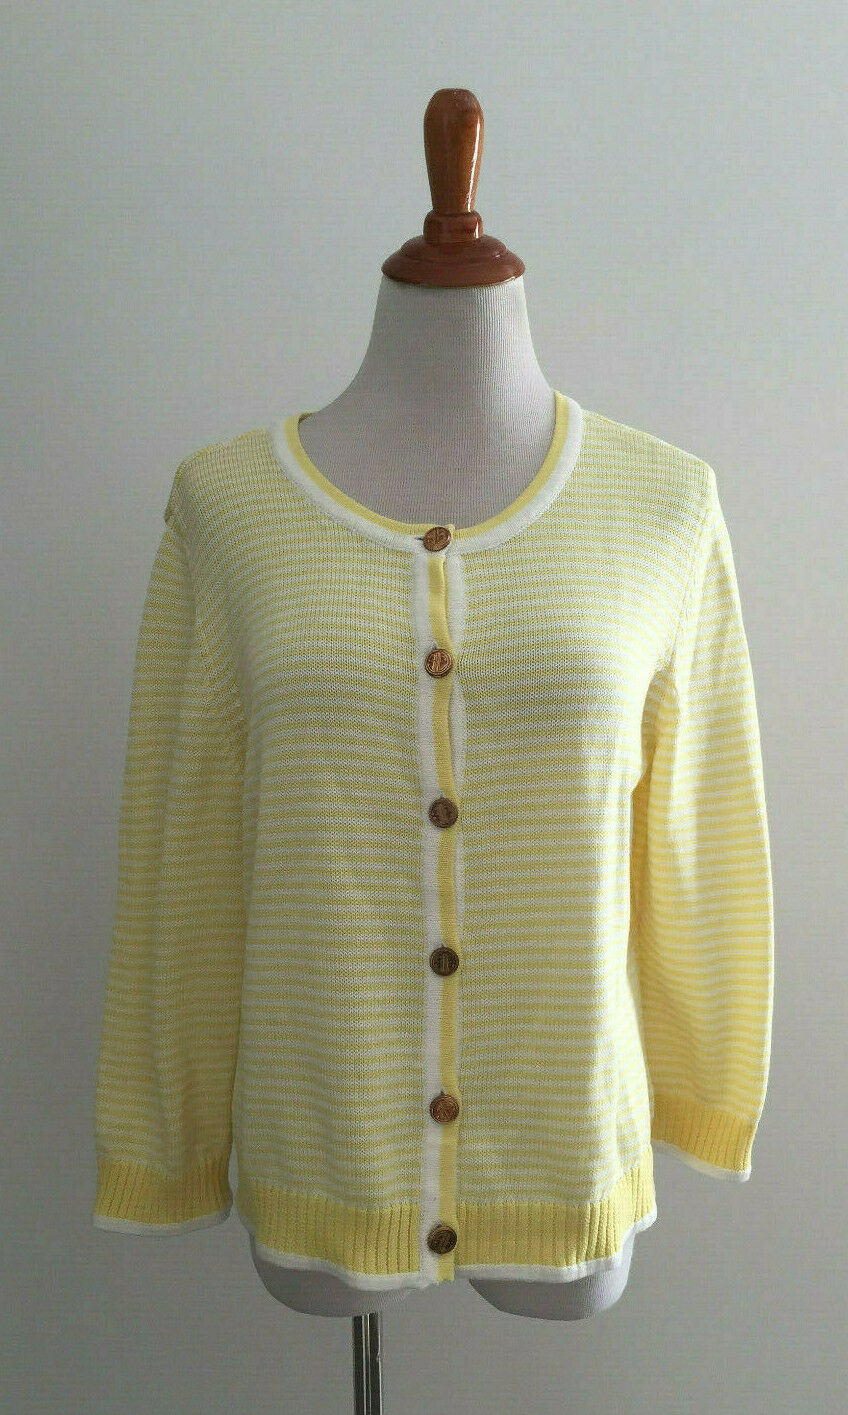 Lilly Pulitzer Yellow and White Striped Cardigan Sweater sz Large